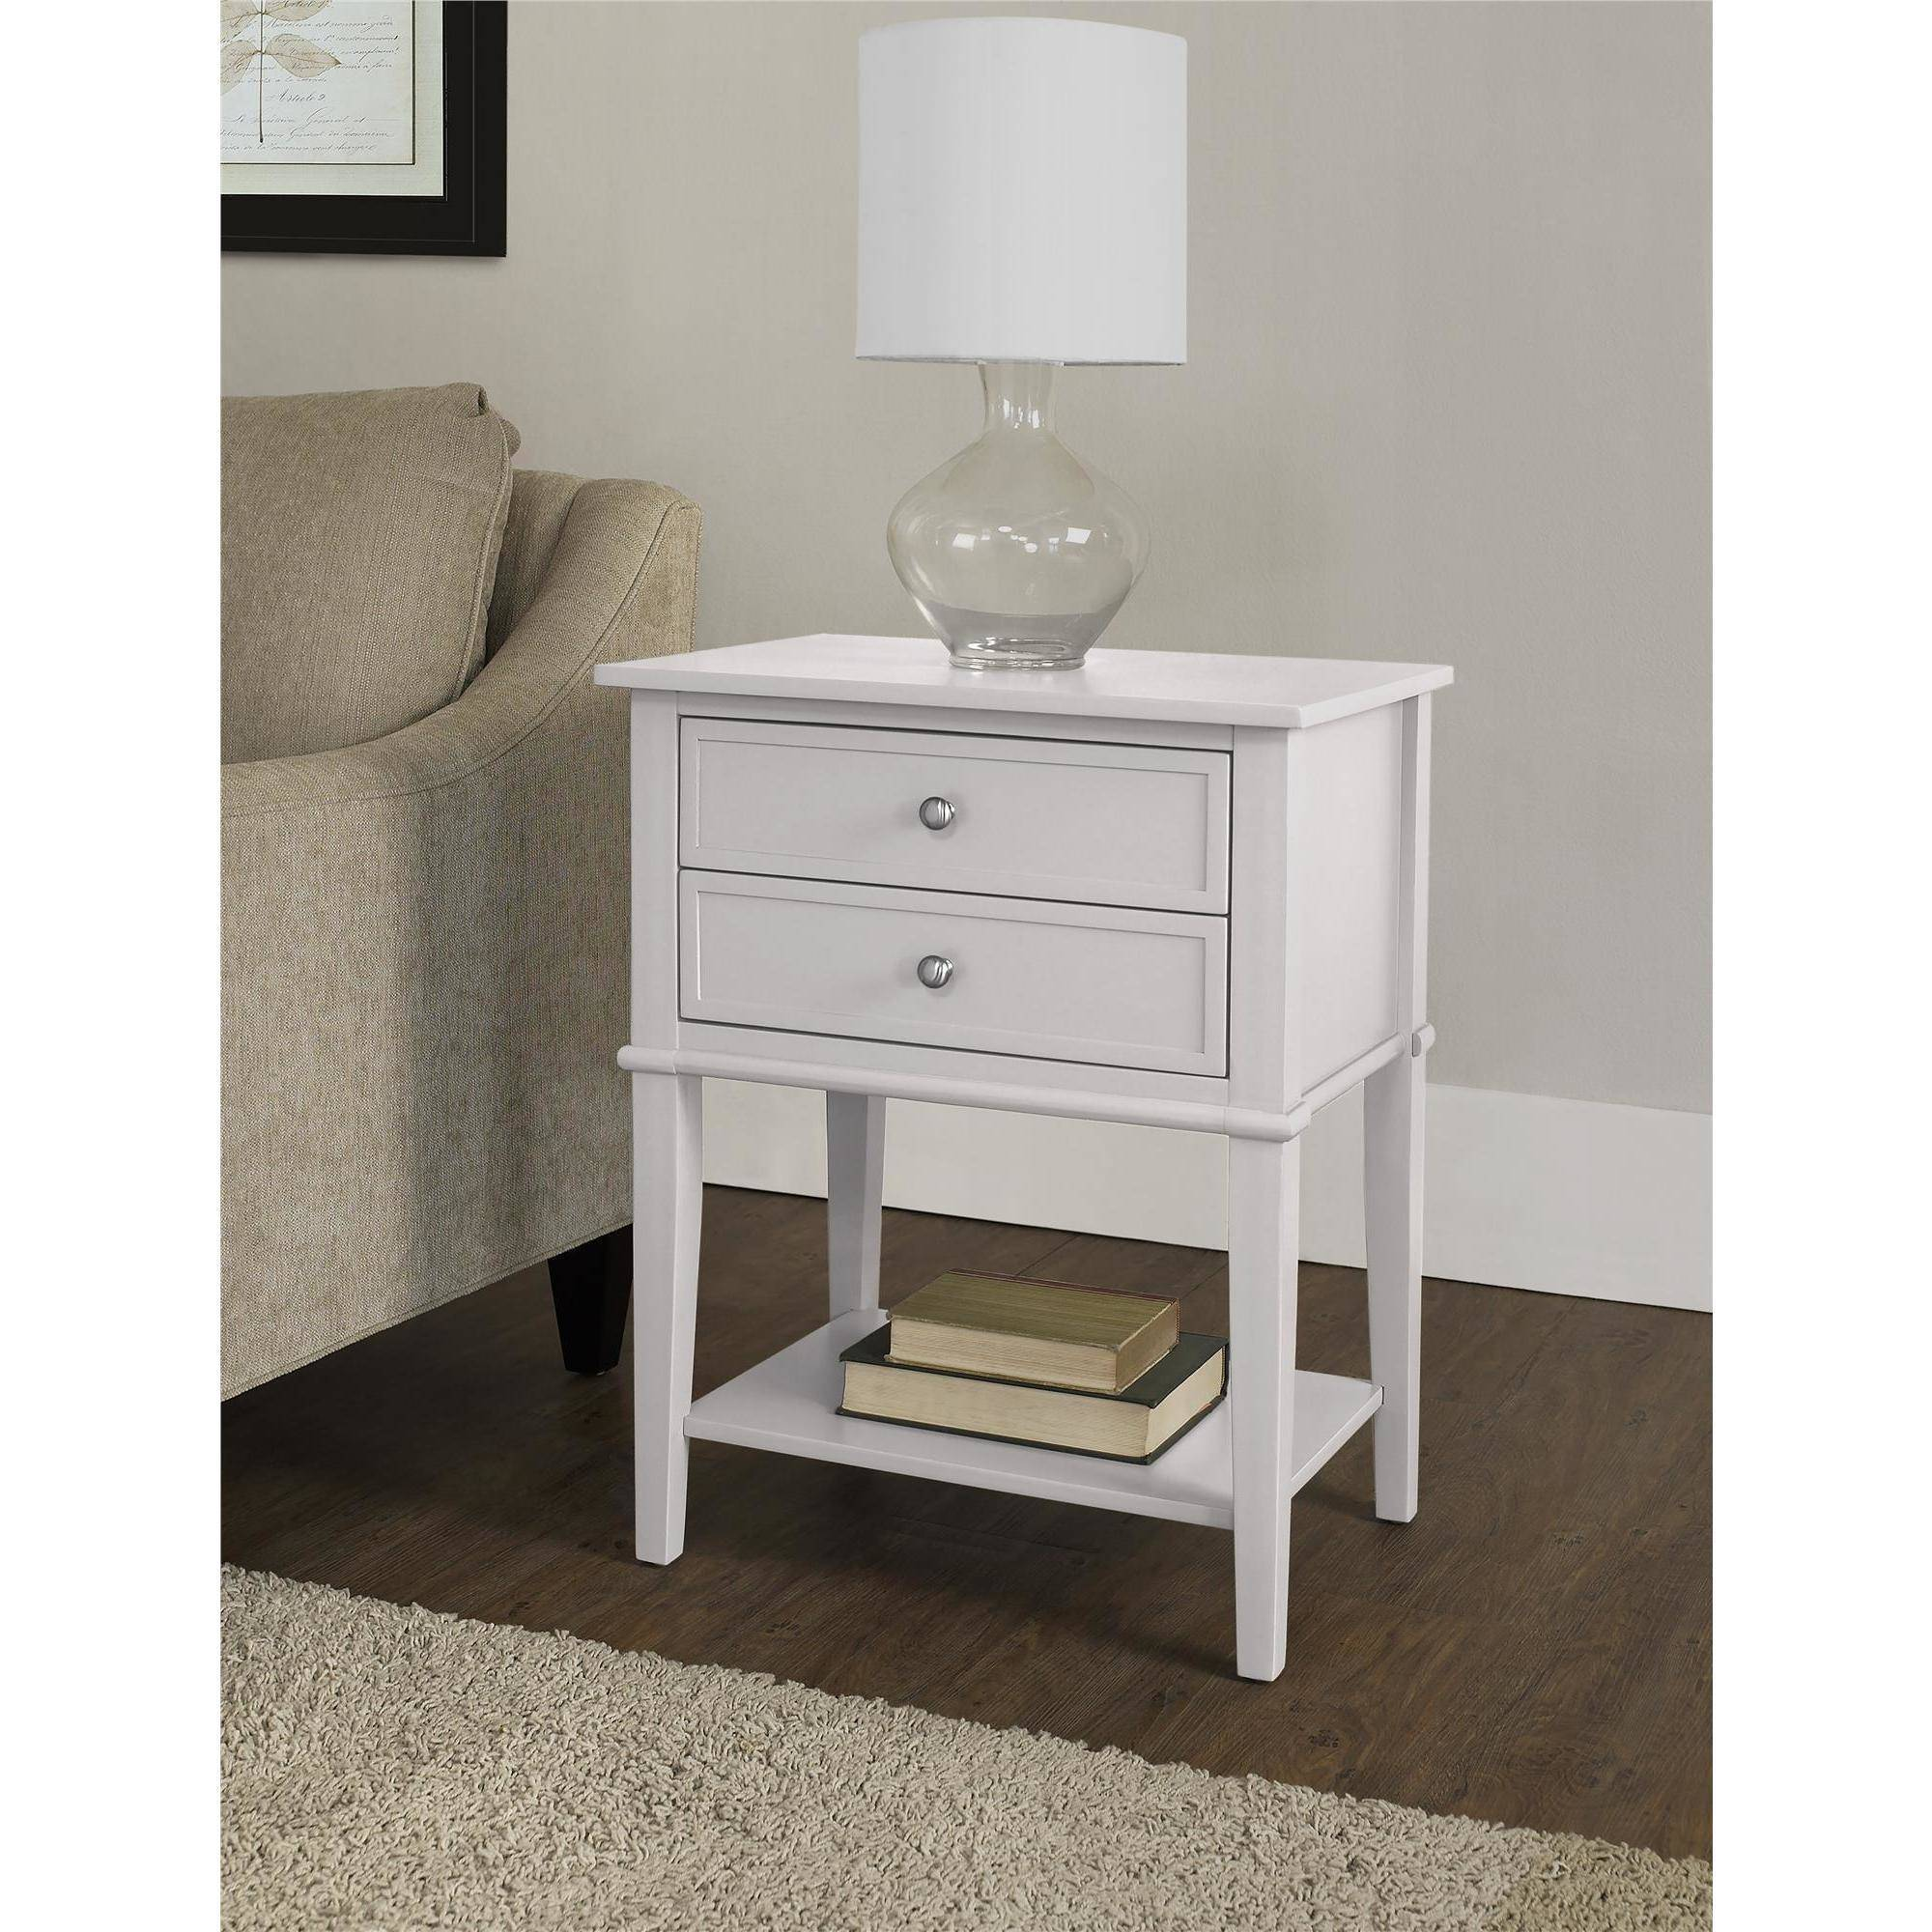 altra franklin accent table with drawers white end drawer stock furniture multiple colors ture bathroom makeup vanity small metal royal sofa set hidden storage round dining lamps